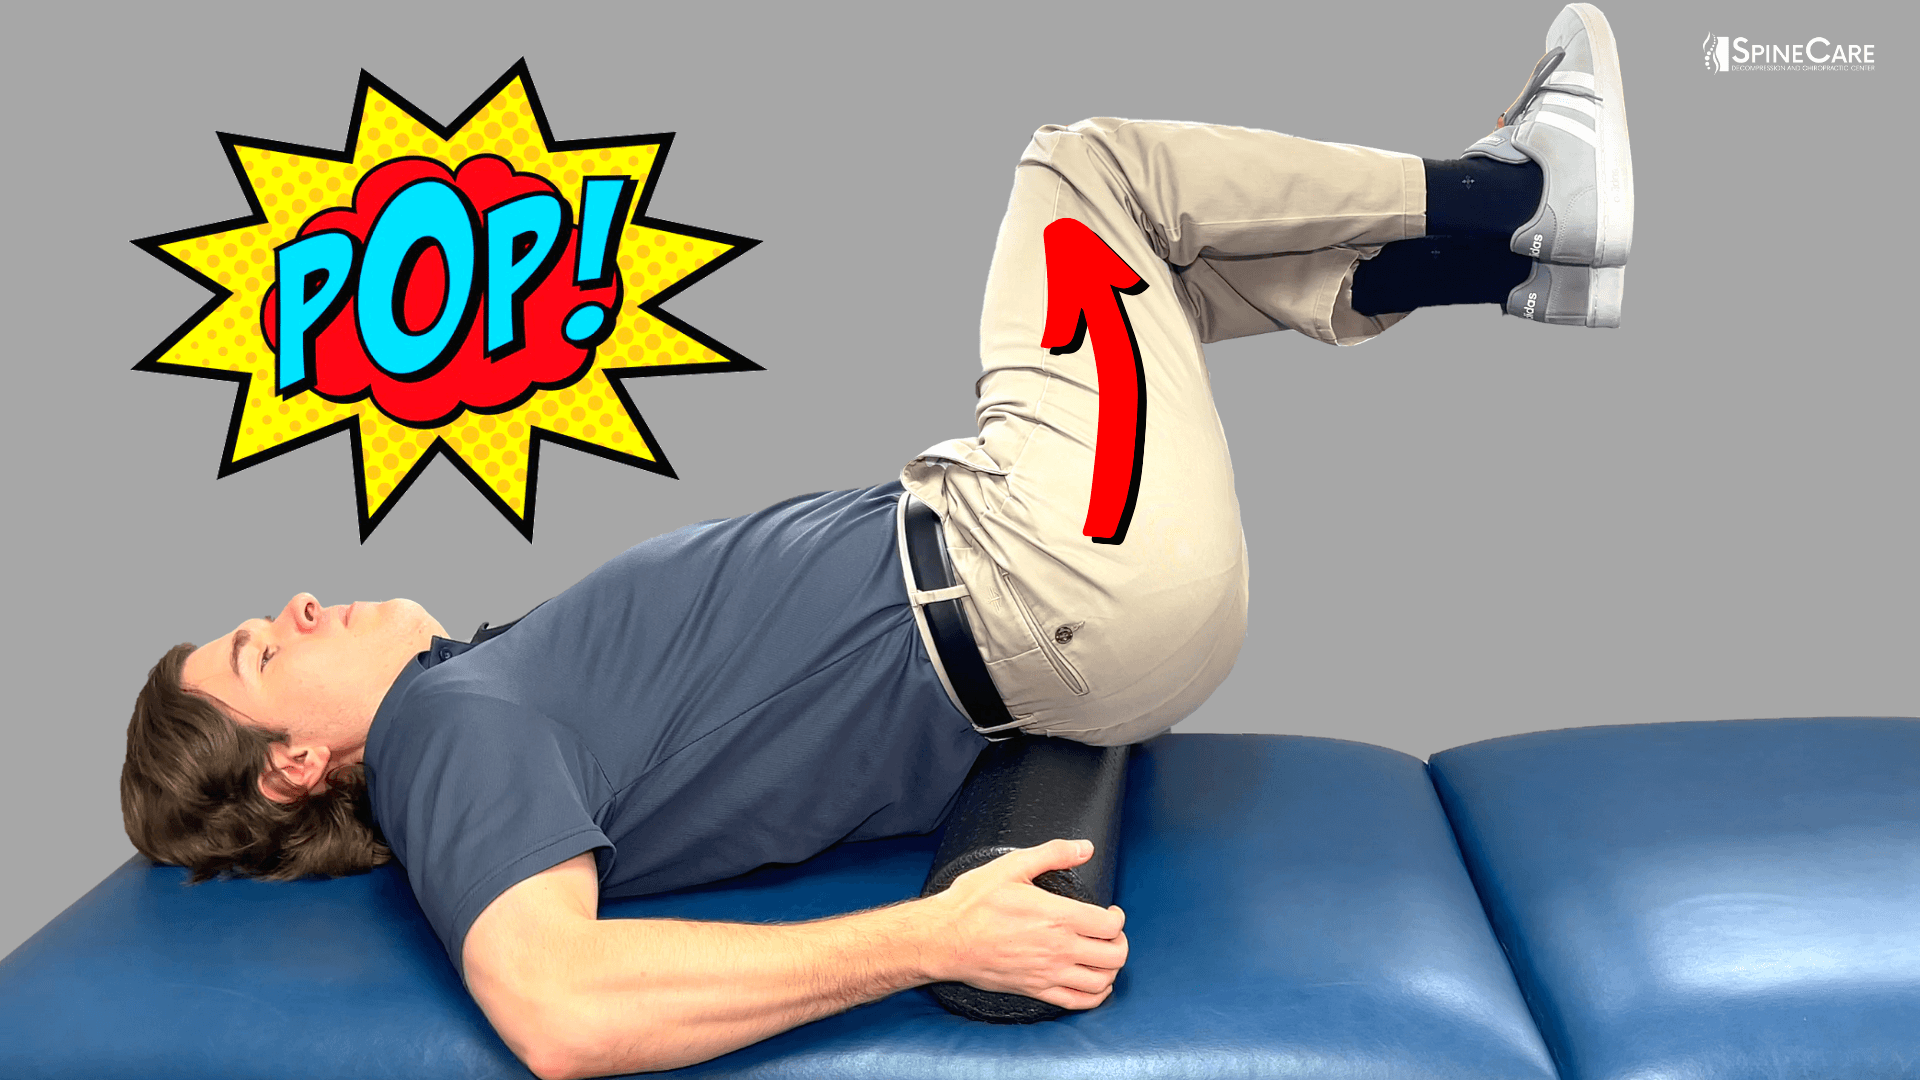 How to Release Your FULL BACK With a Foam Roller | SpineCare | St. Joseph, Michigan Chiropractor